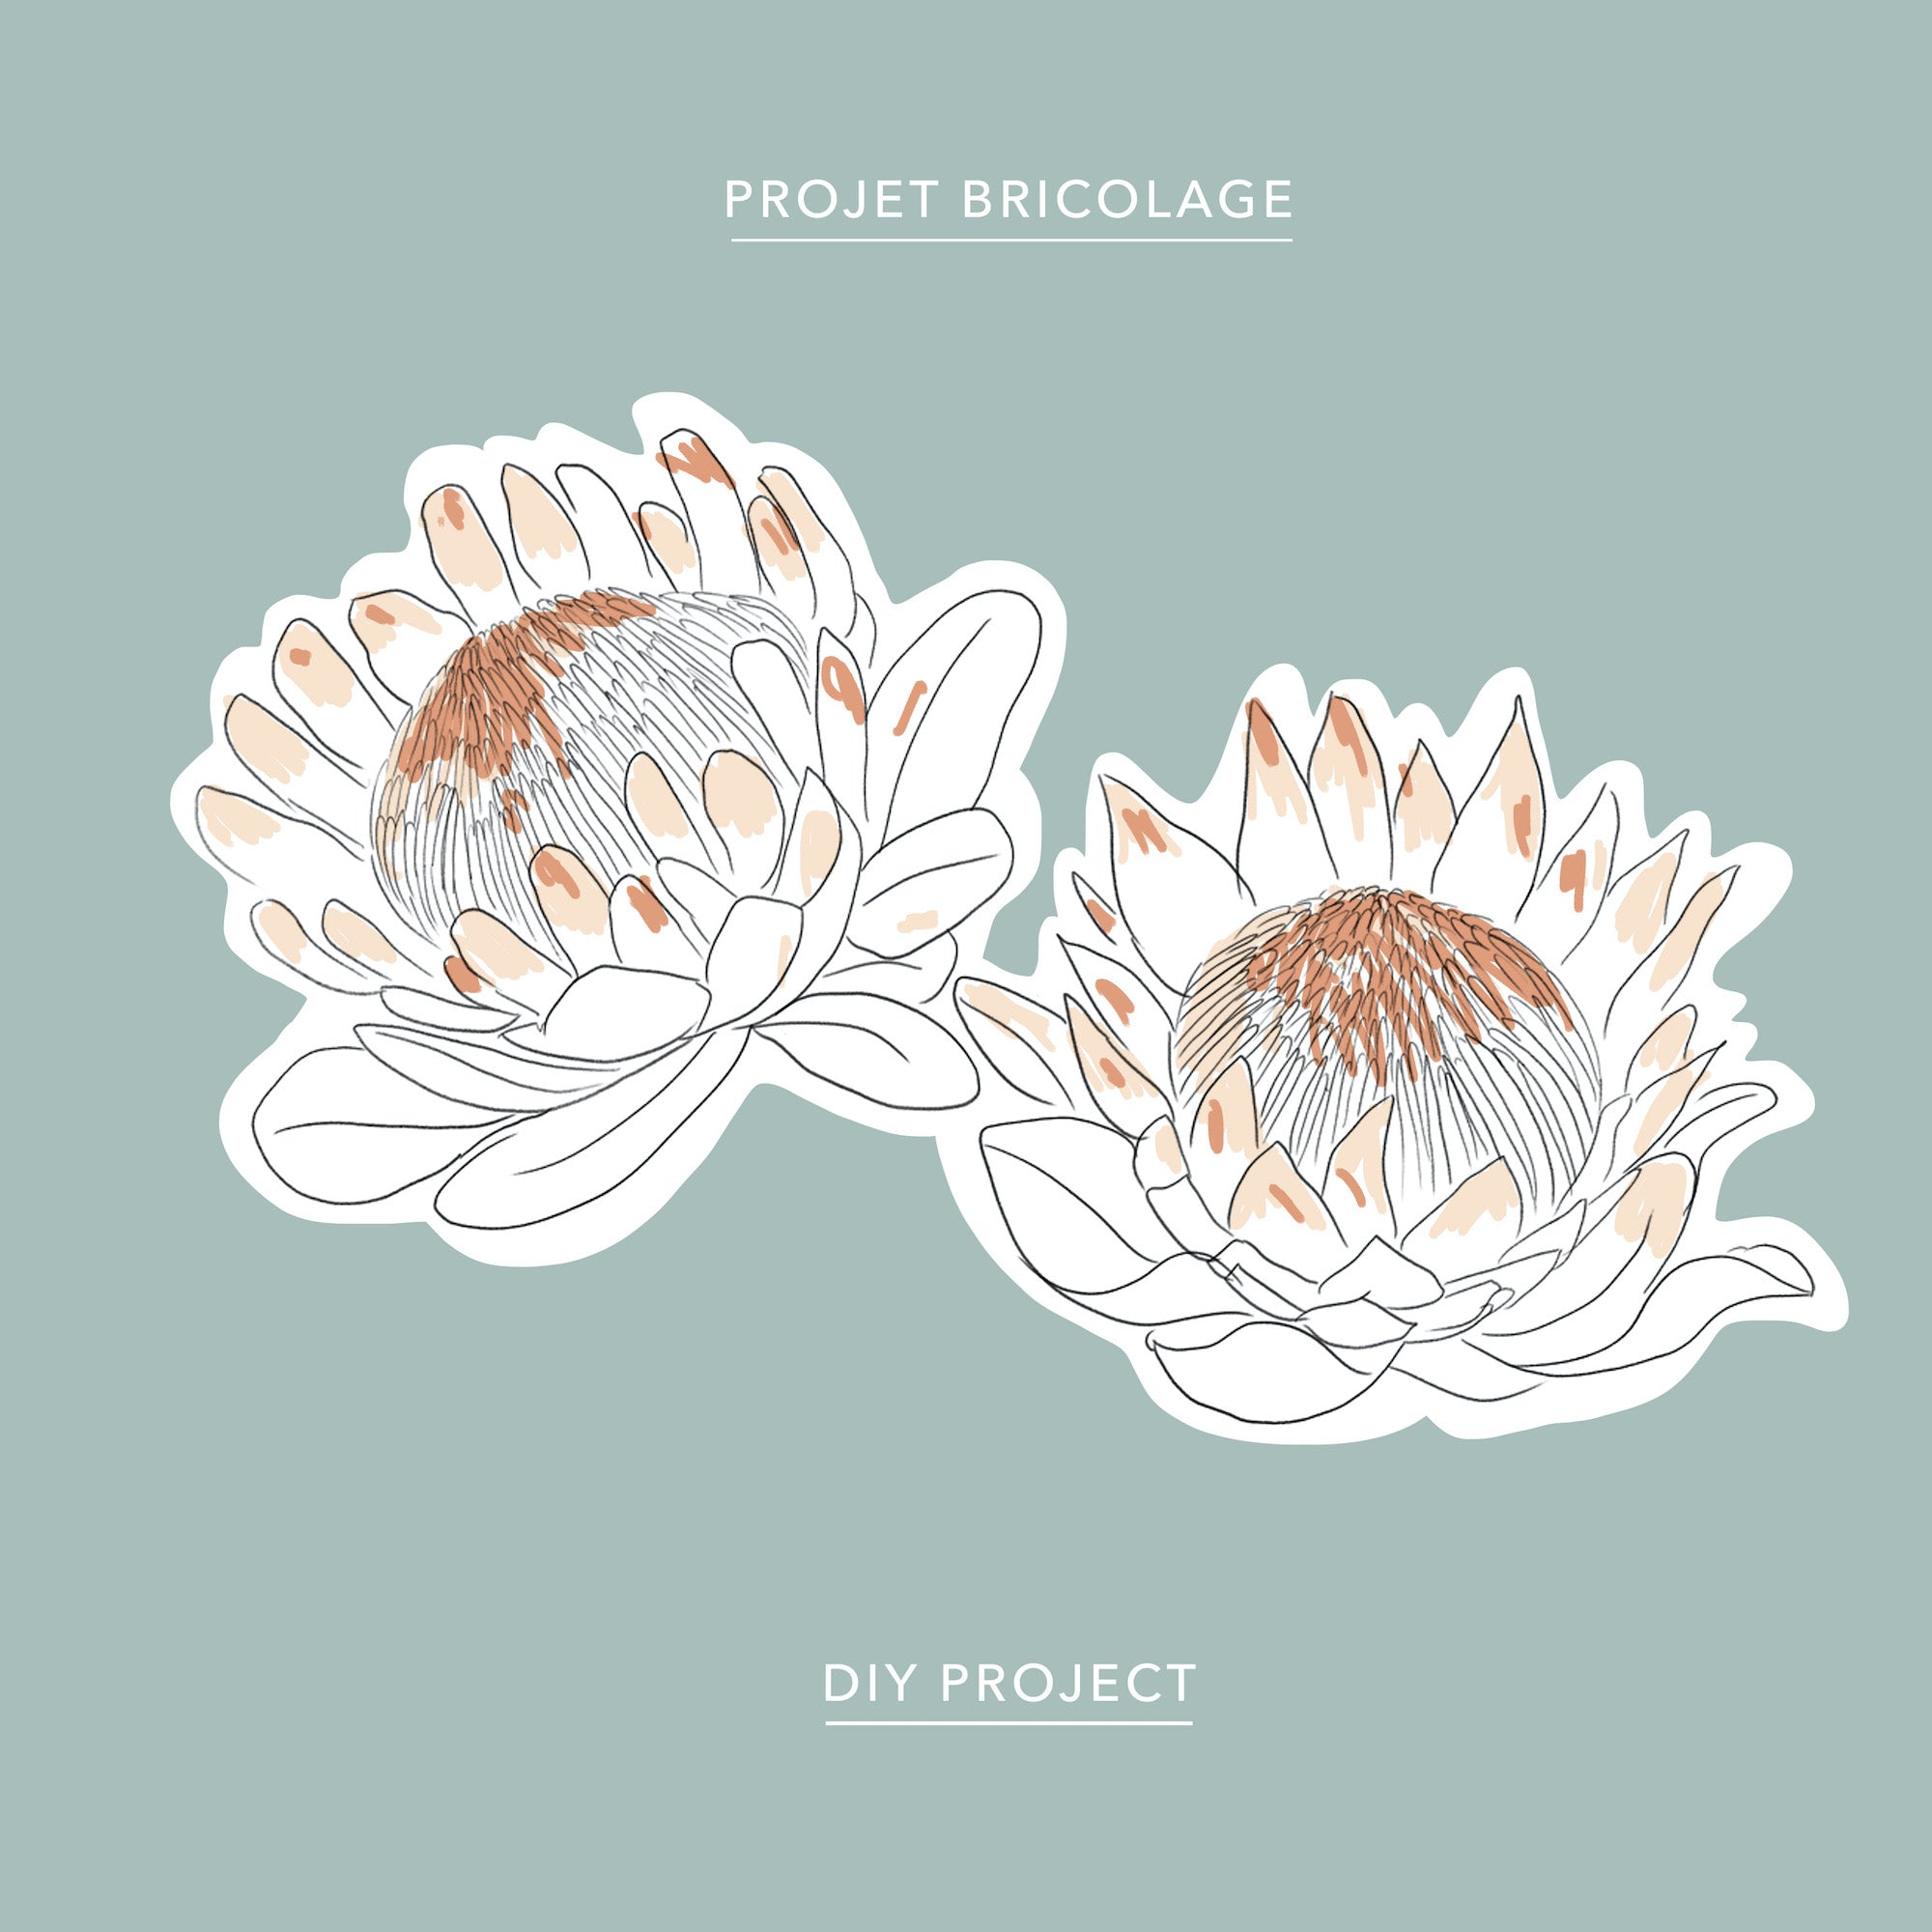 A free protea coloring sheet download, by the Baltic Club